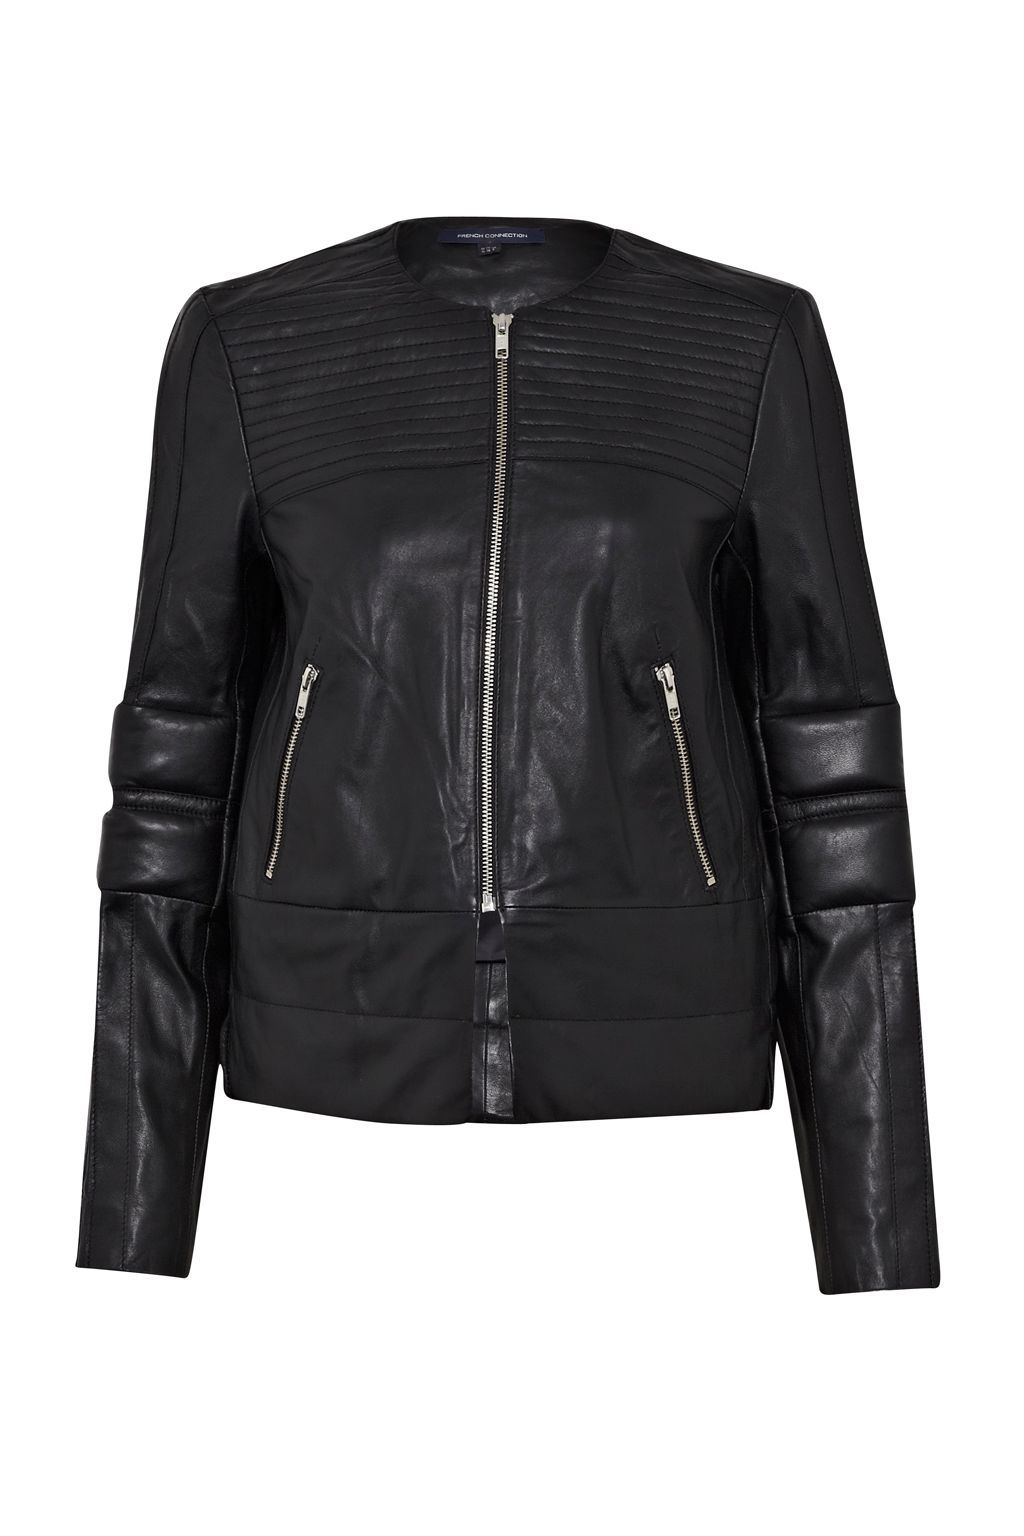 Jetson Leather Biker Jacket, Black - pattern: plain; style: biker; collar: standard biker; fit: slim fit; predominant colour: black; occasions: casual, evening, creative work; length: standard; fibres: leather - 100%; sleeve length: long sleeve; sleeve style: standard; texture group: leather; collar break: high/illusion of break when open; pattern type: fabric; season: s/s 2015; wardrobe: basic